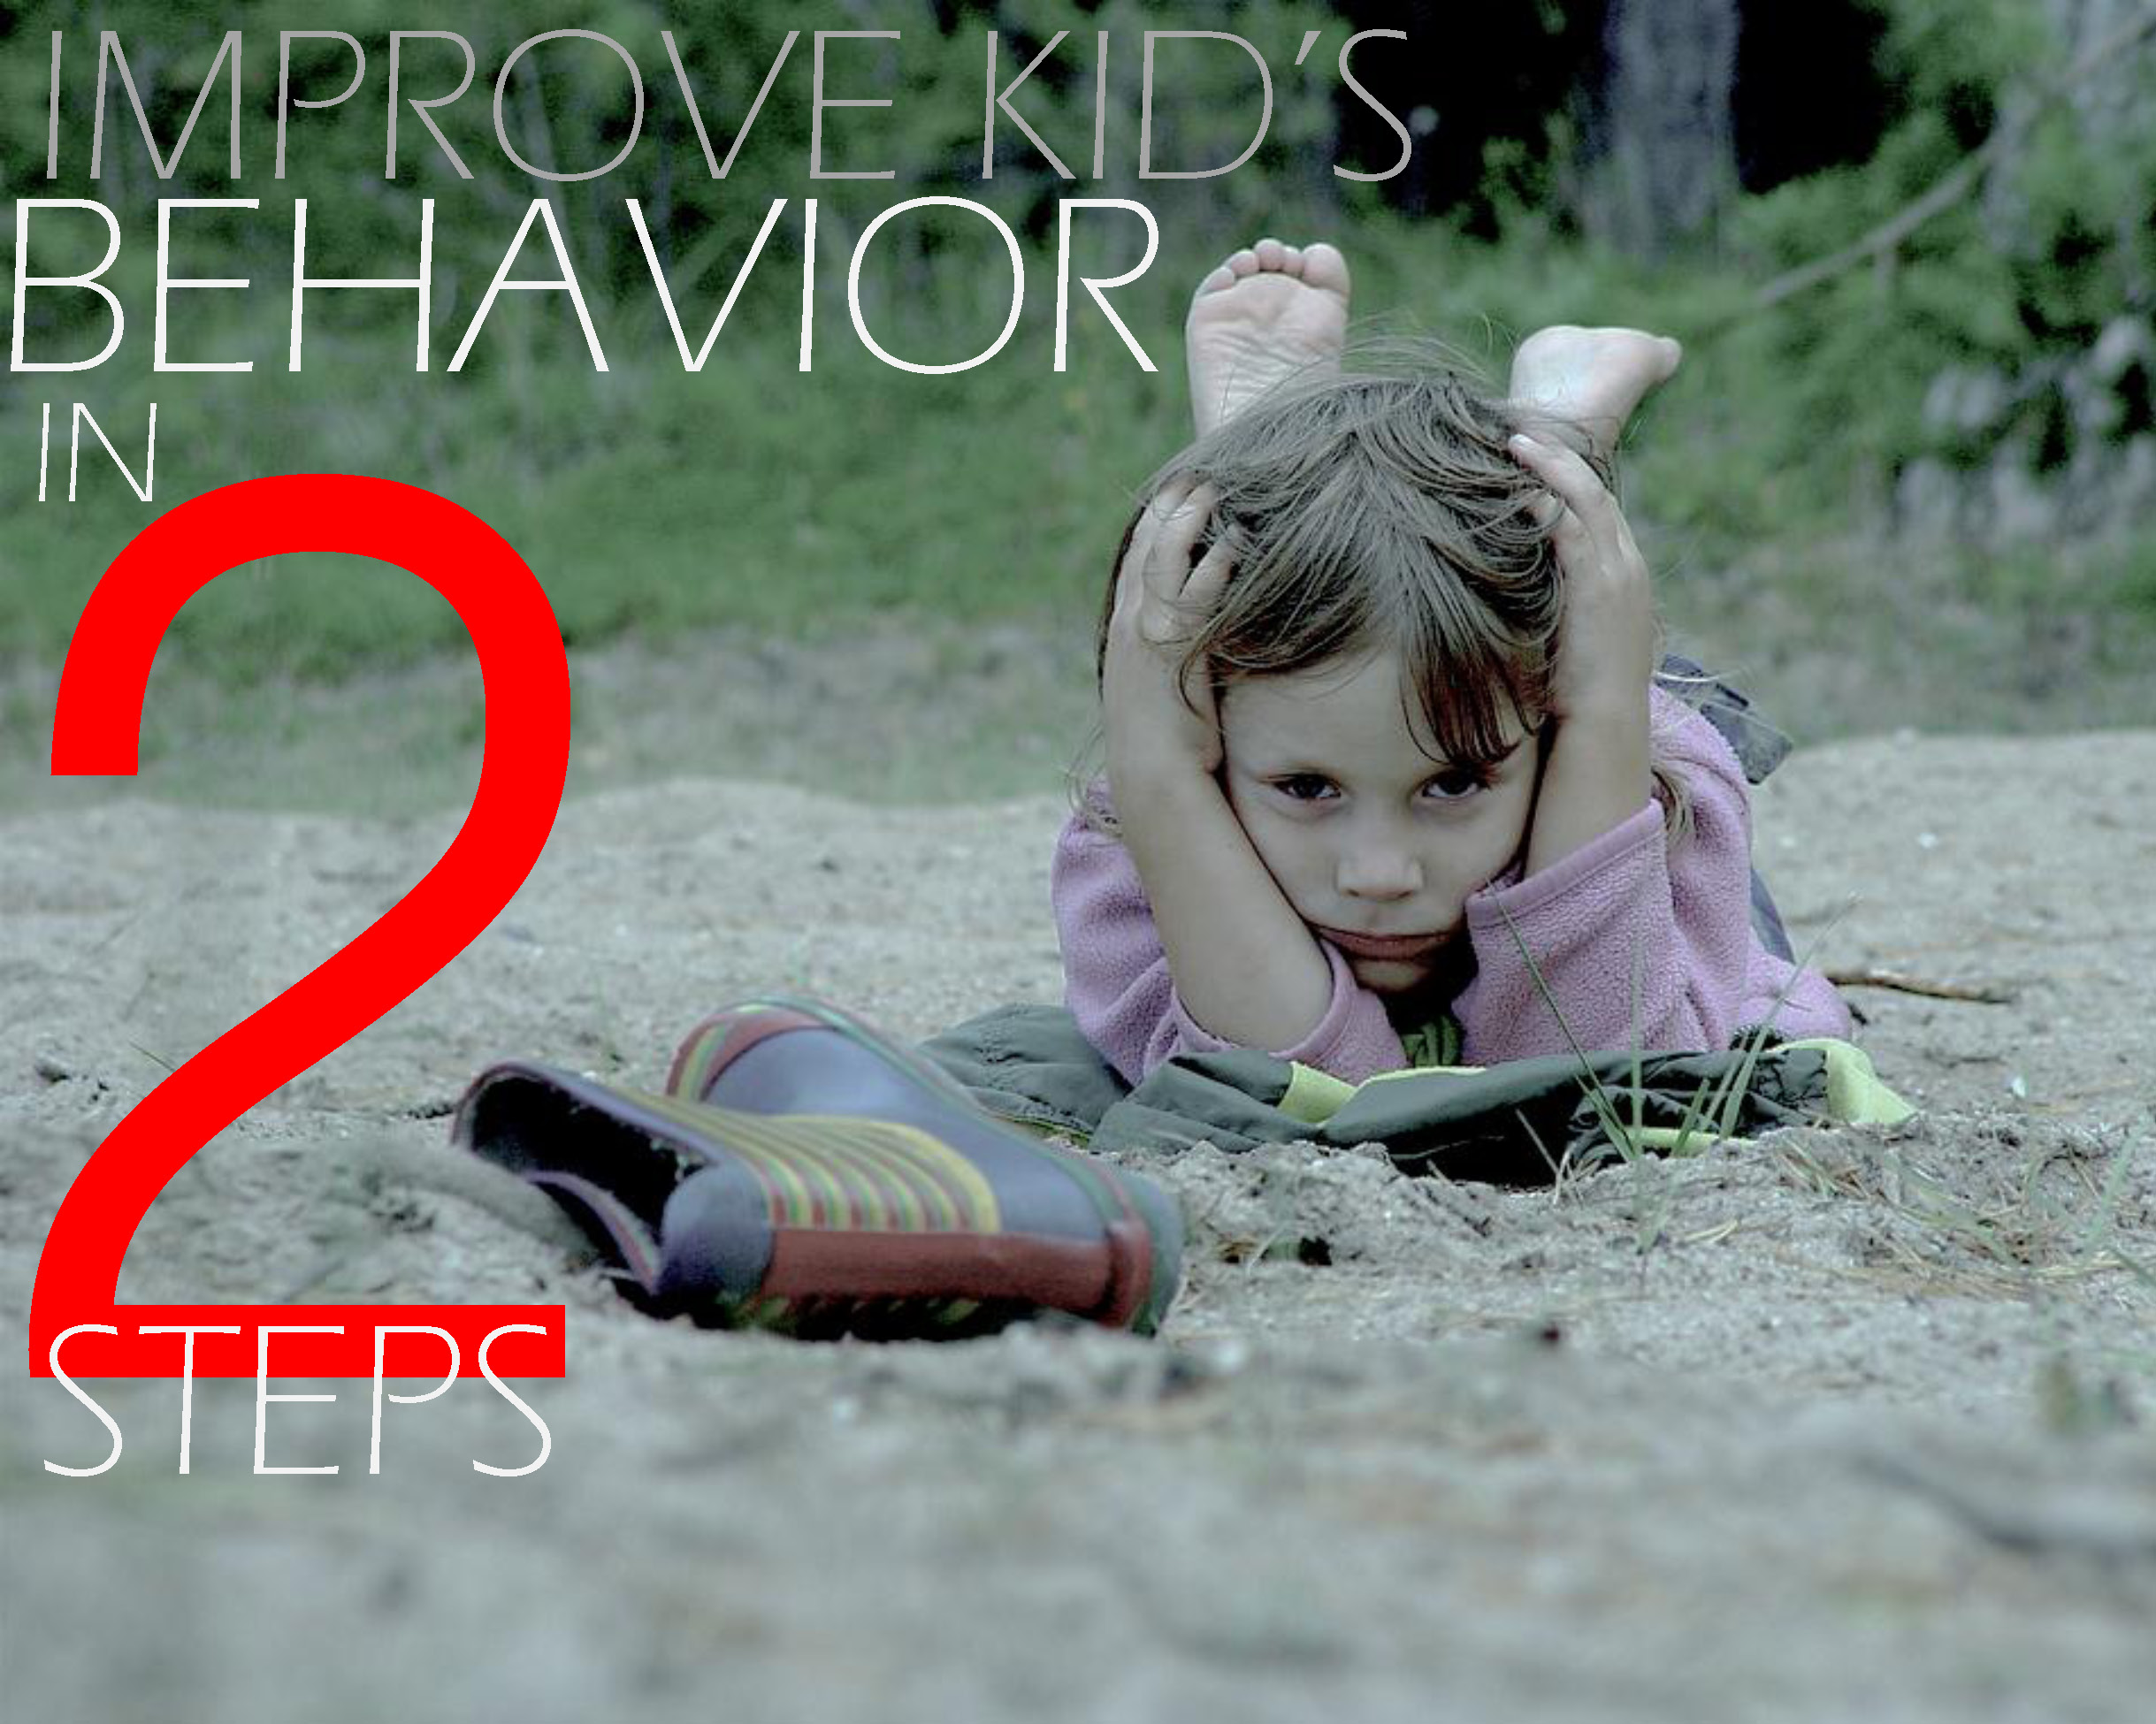 IMPROVE KID'S BEHAVIOR